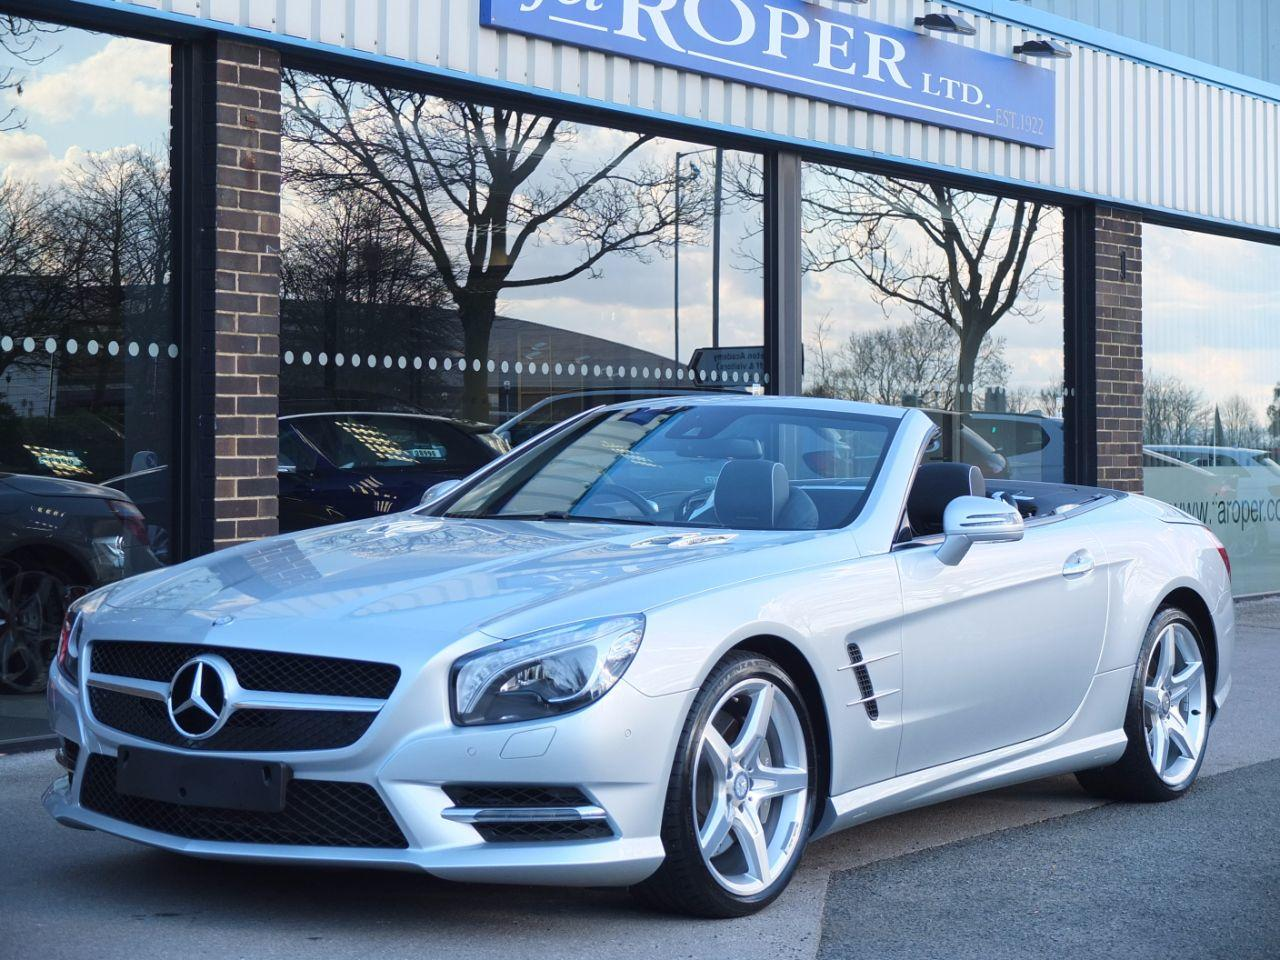 Mercedes-Benz SL Class 3.5 SL 350 BlueEfficiency 7G-Tronic Plus, AMG Sports Package Convertible Petrol Iridium Silver MetallicMercedes-Benz SL Class 3.5 SL 350 BlueEfficiency 7G-Tronic Plus, AMG Sports Package Convertible Petrol Iridium Silver Metallic at fa Roper Ltd Bradford